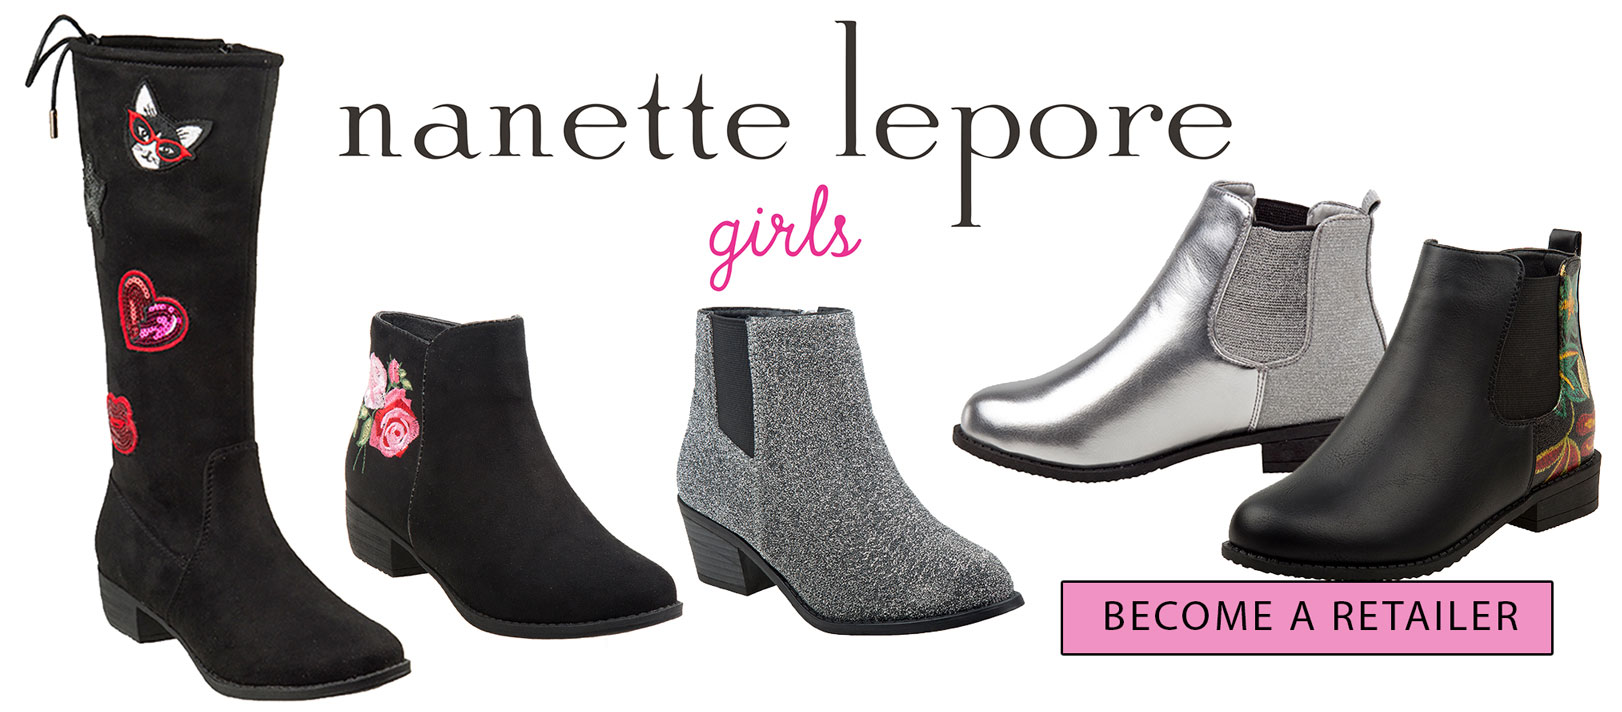 Nanette Lepore girls